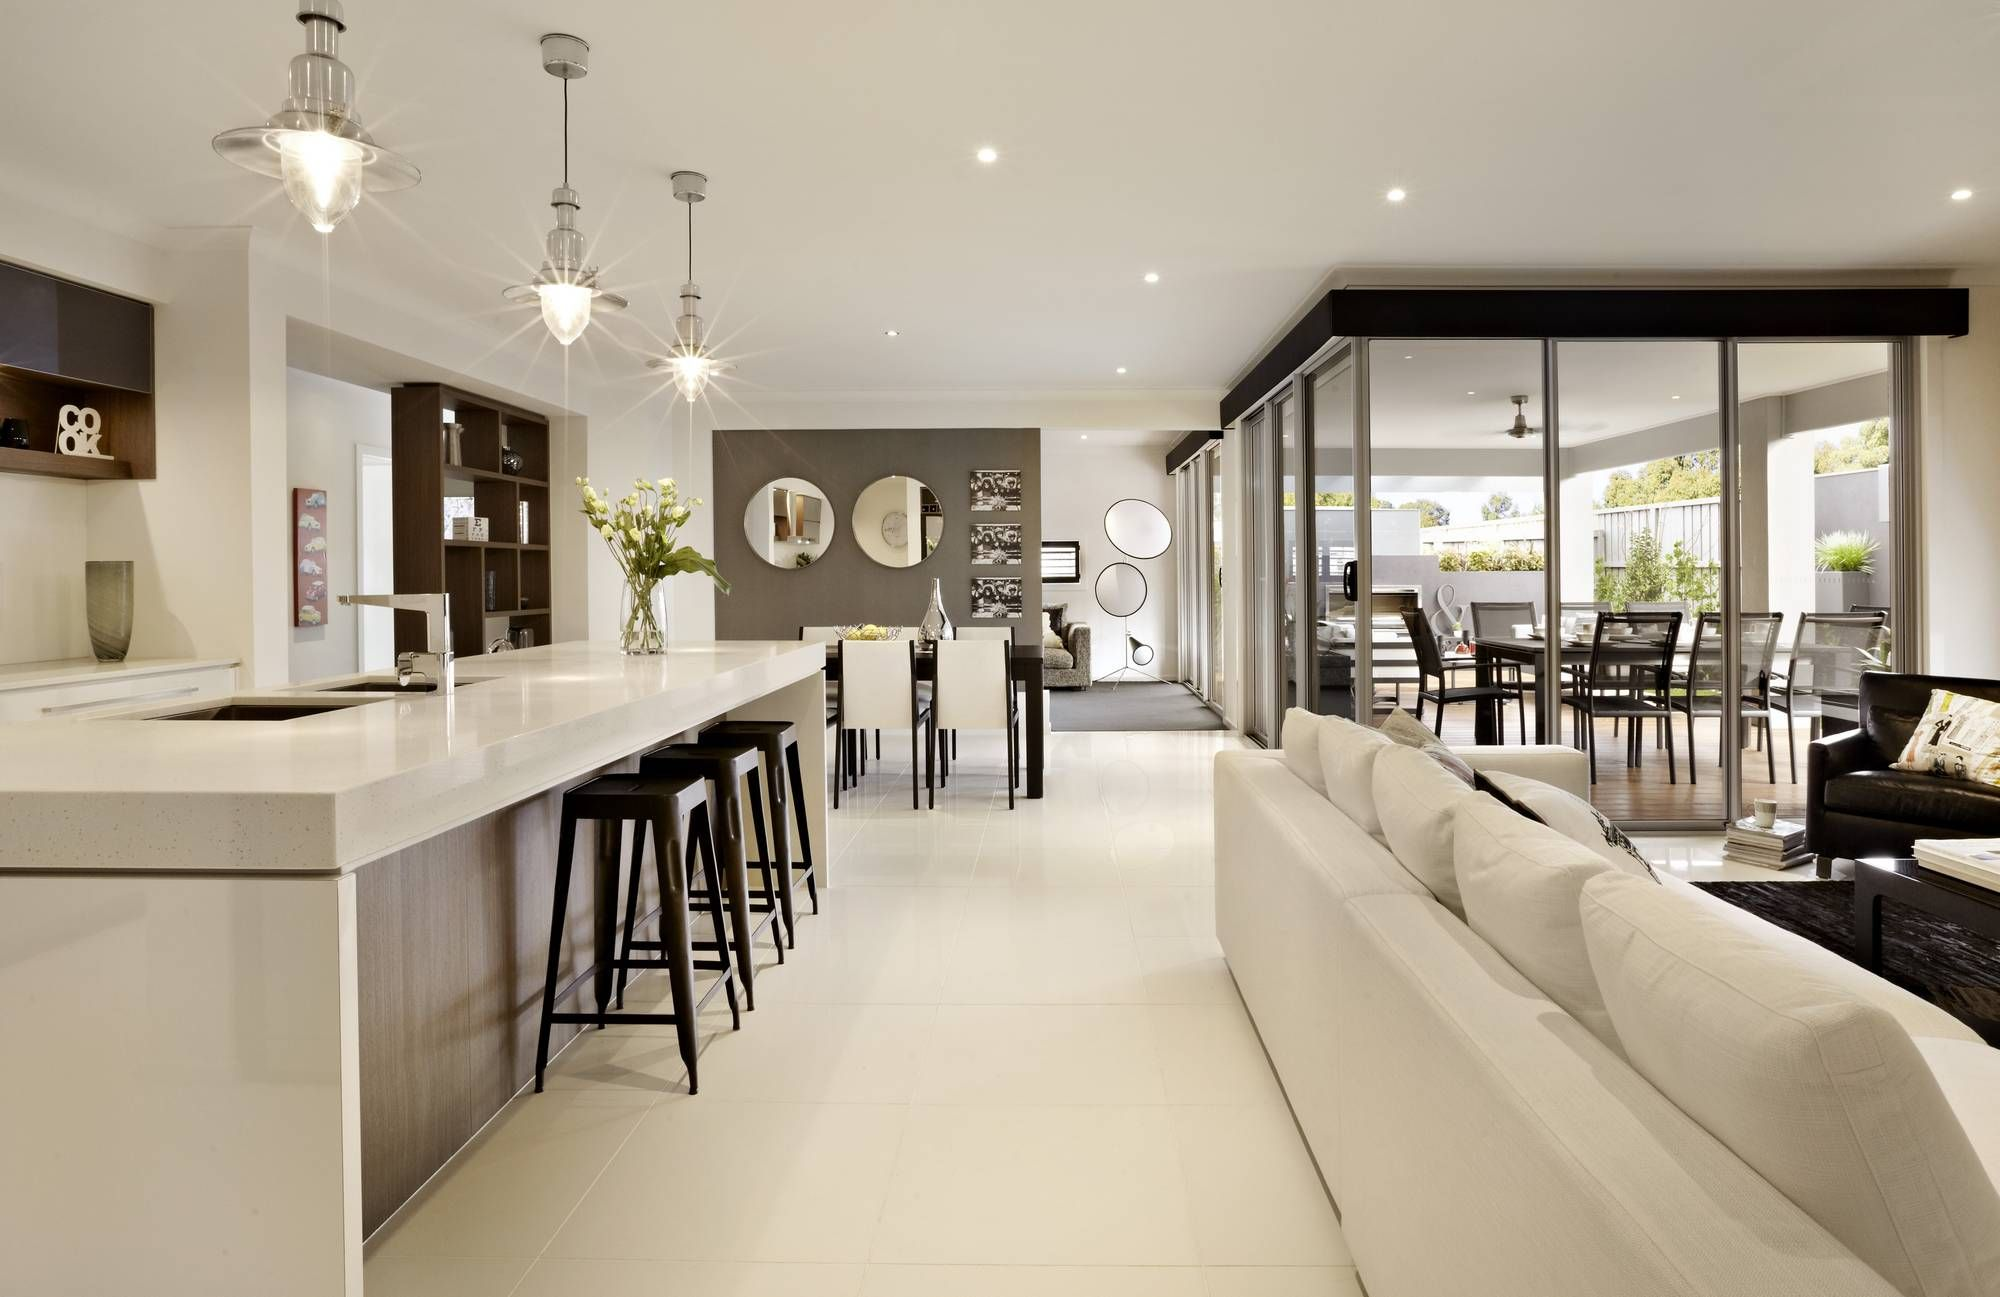 Gorgeous kitchen lounge with corner sliding door | Dream home ...